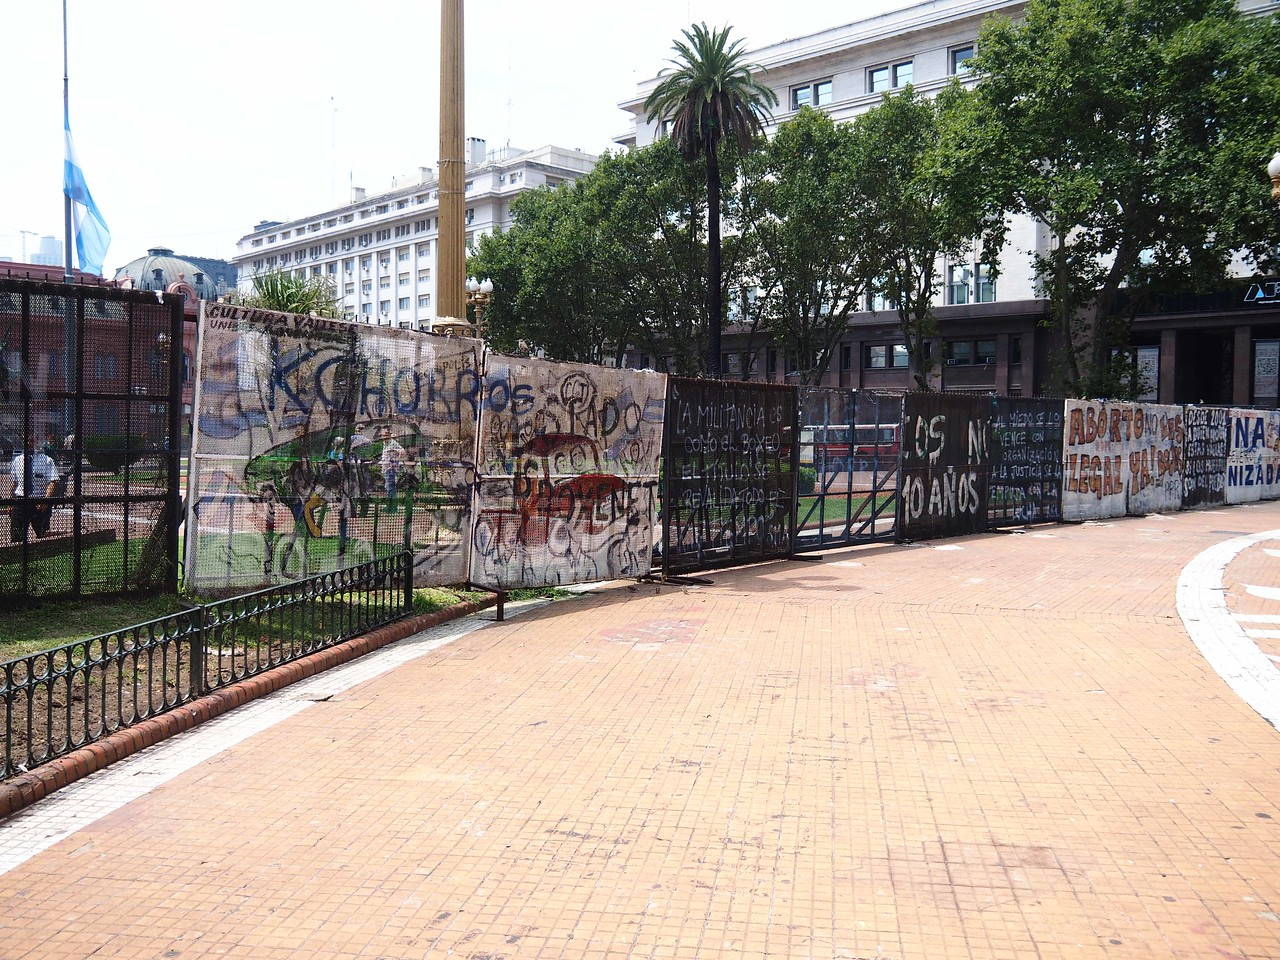 Protest Signs on Security Fence in Front of Presidential Palace